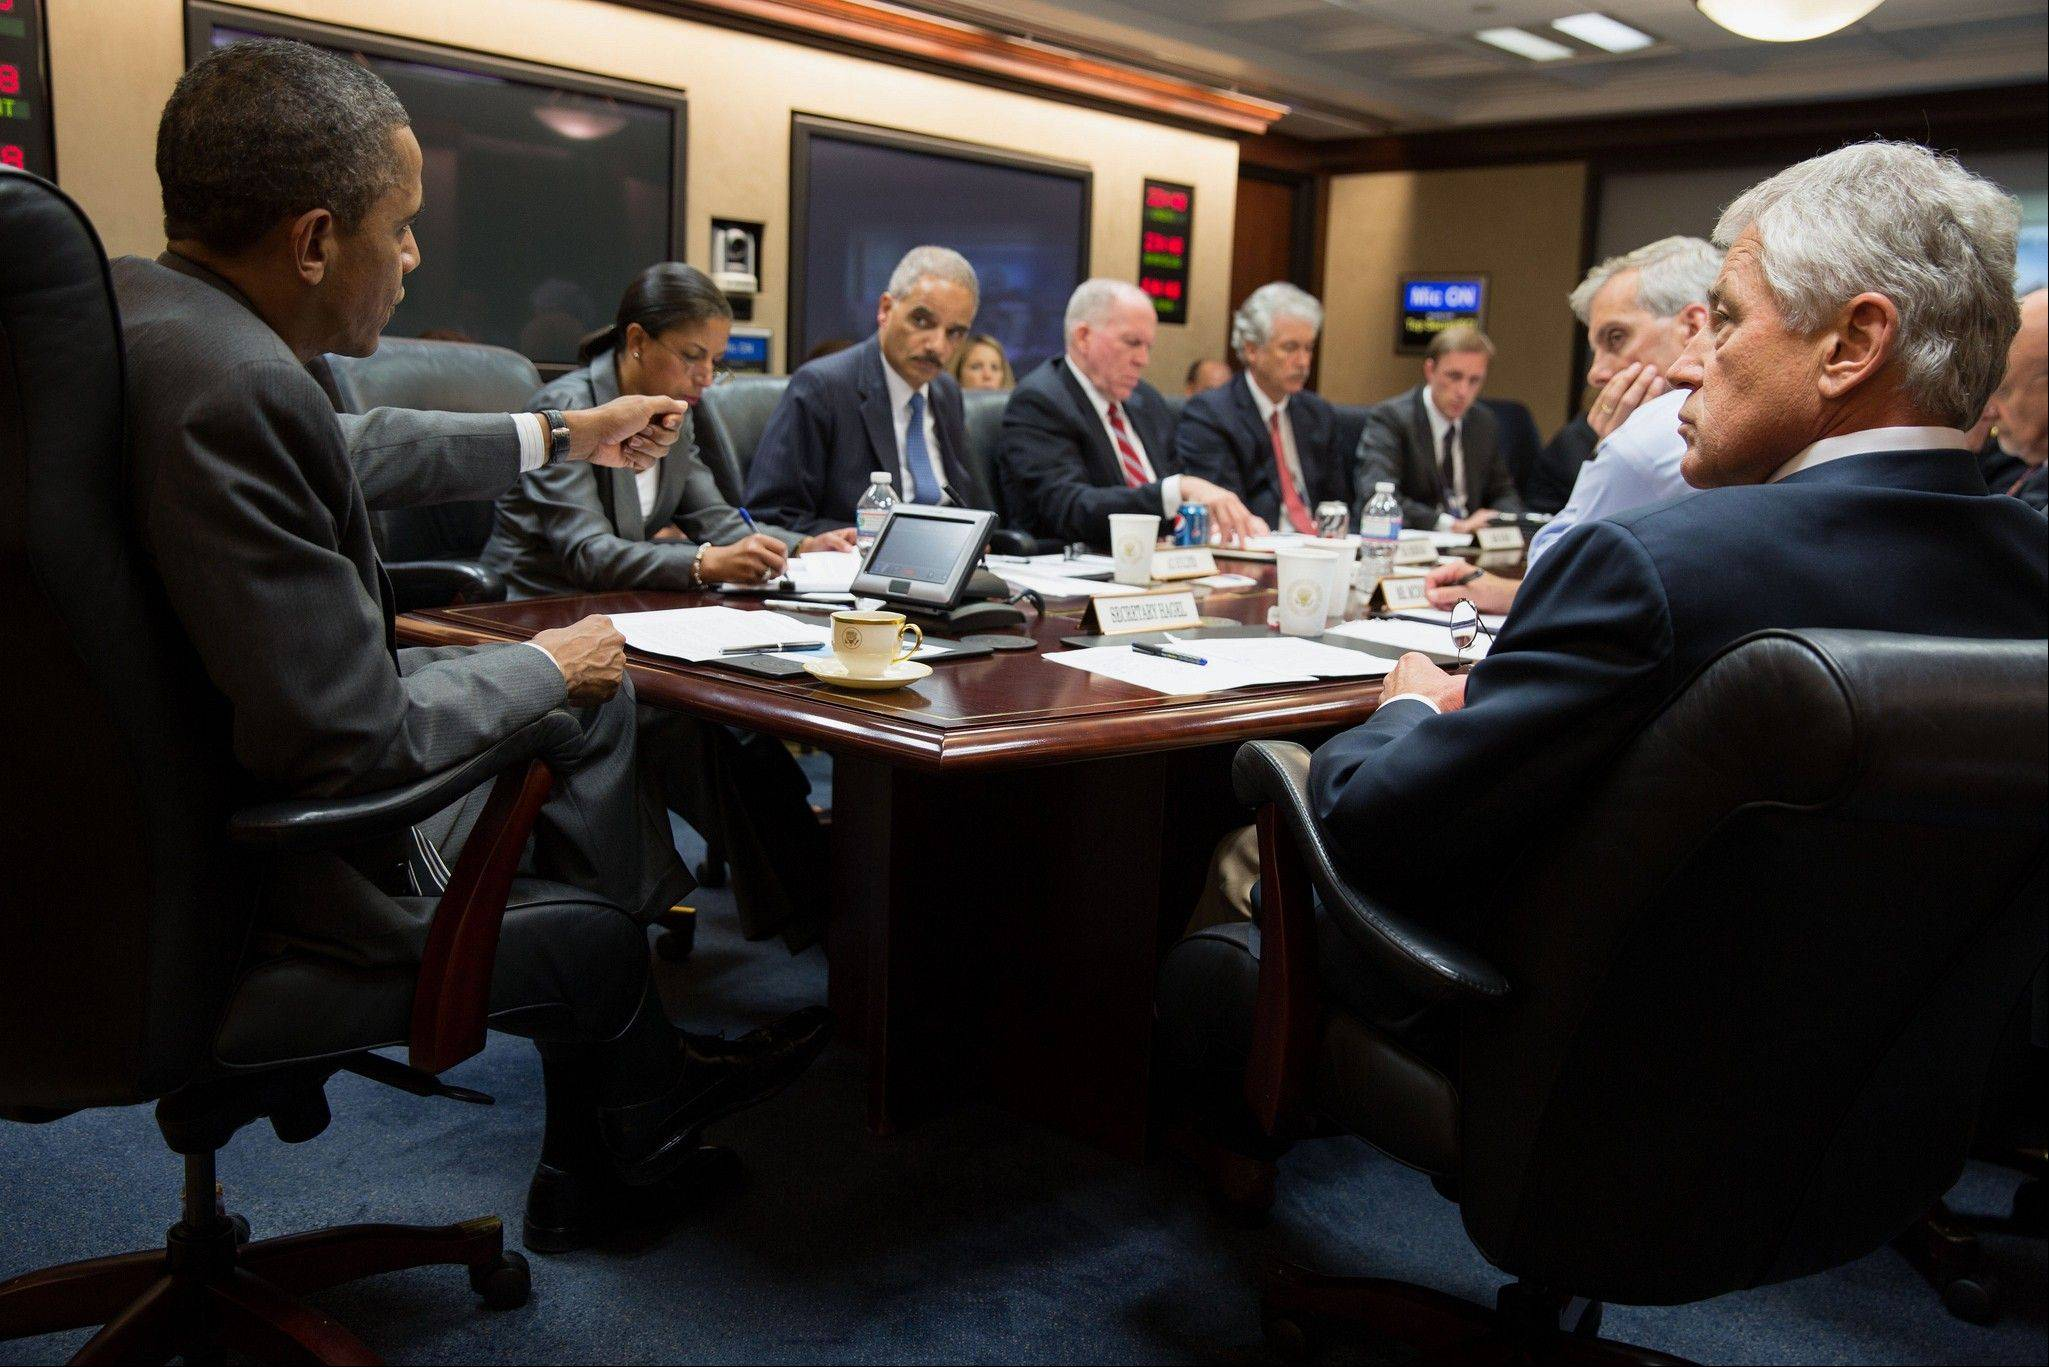 Congress divided on using aid to pressure Egypt